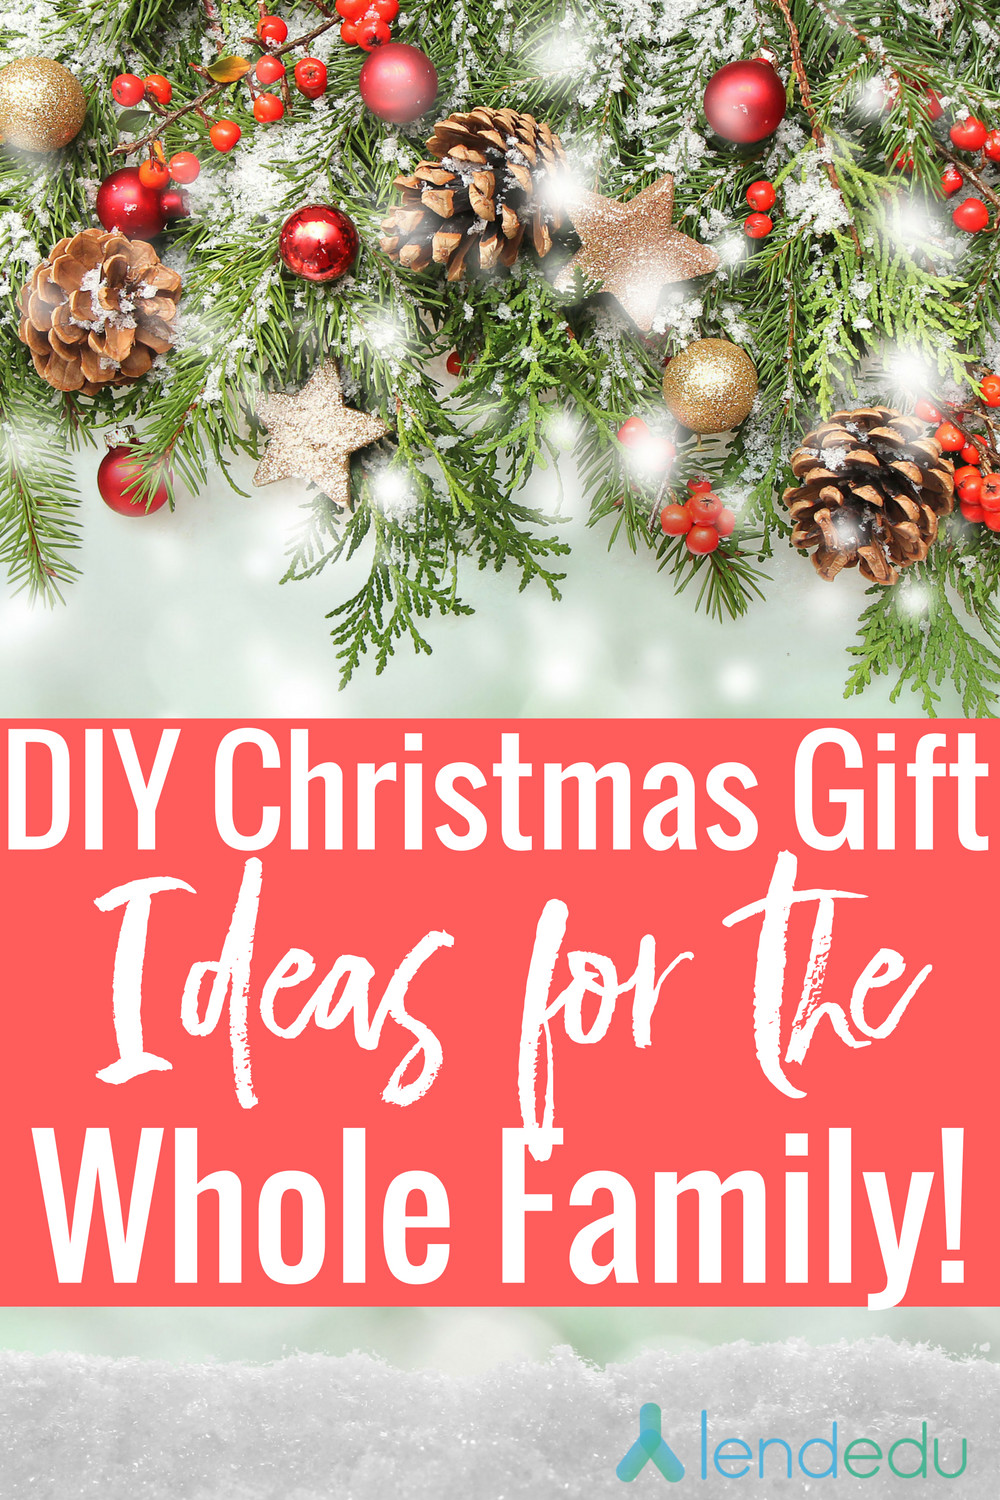 Best ideas about Christmas Gift Ideas For Family . Save or Pin DIY Christmas Gifts for the Whole Family LendEDU Now.